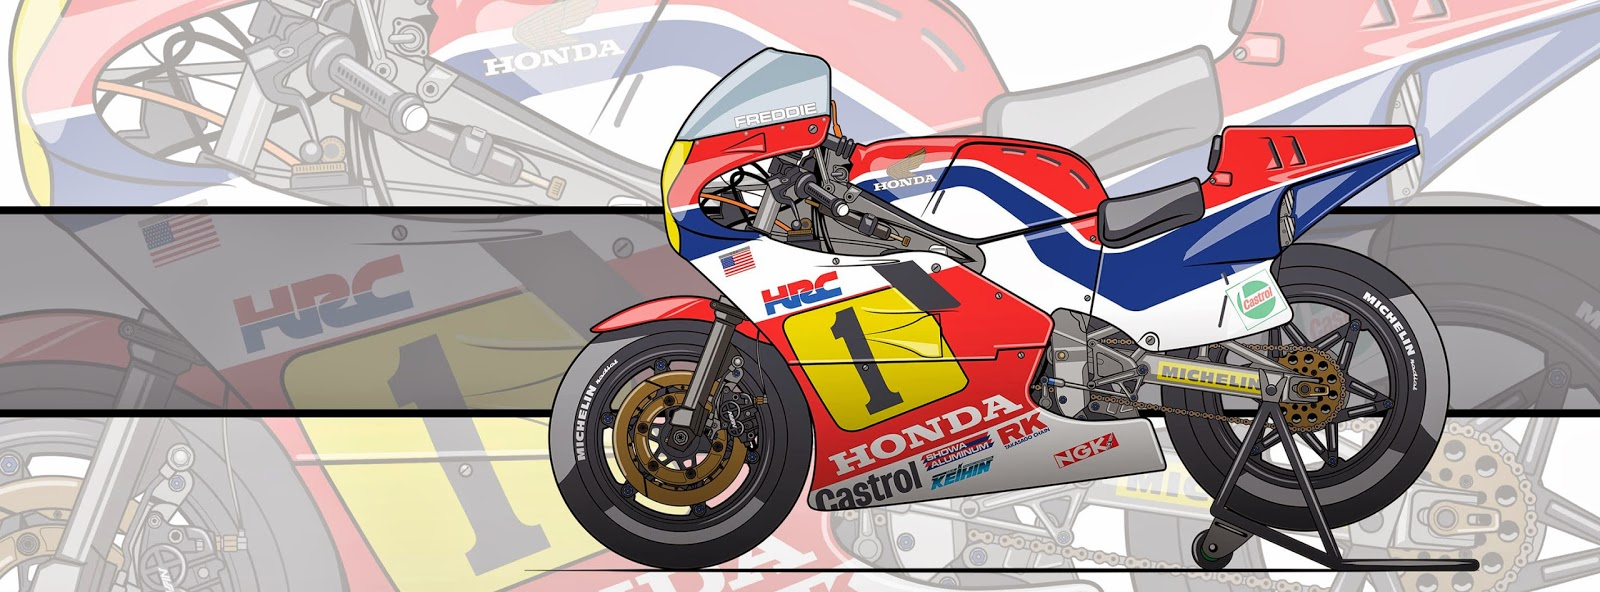 Racing Caf 232 Motorcycle Art Honda Nsr 500 Freddie